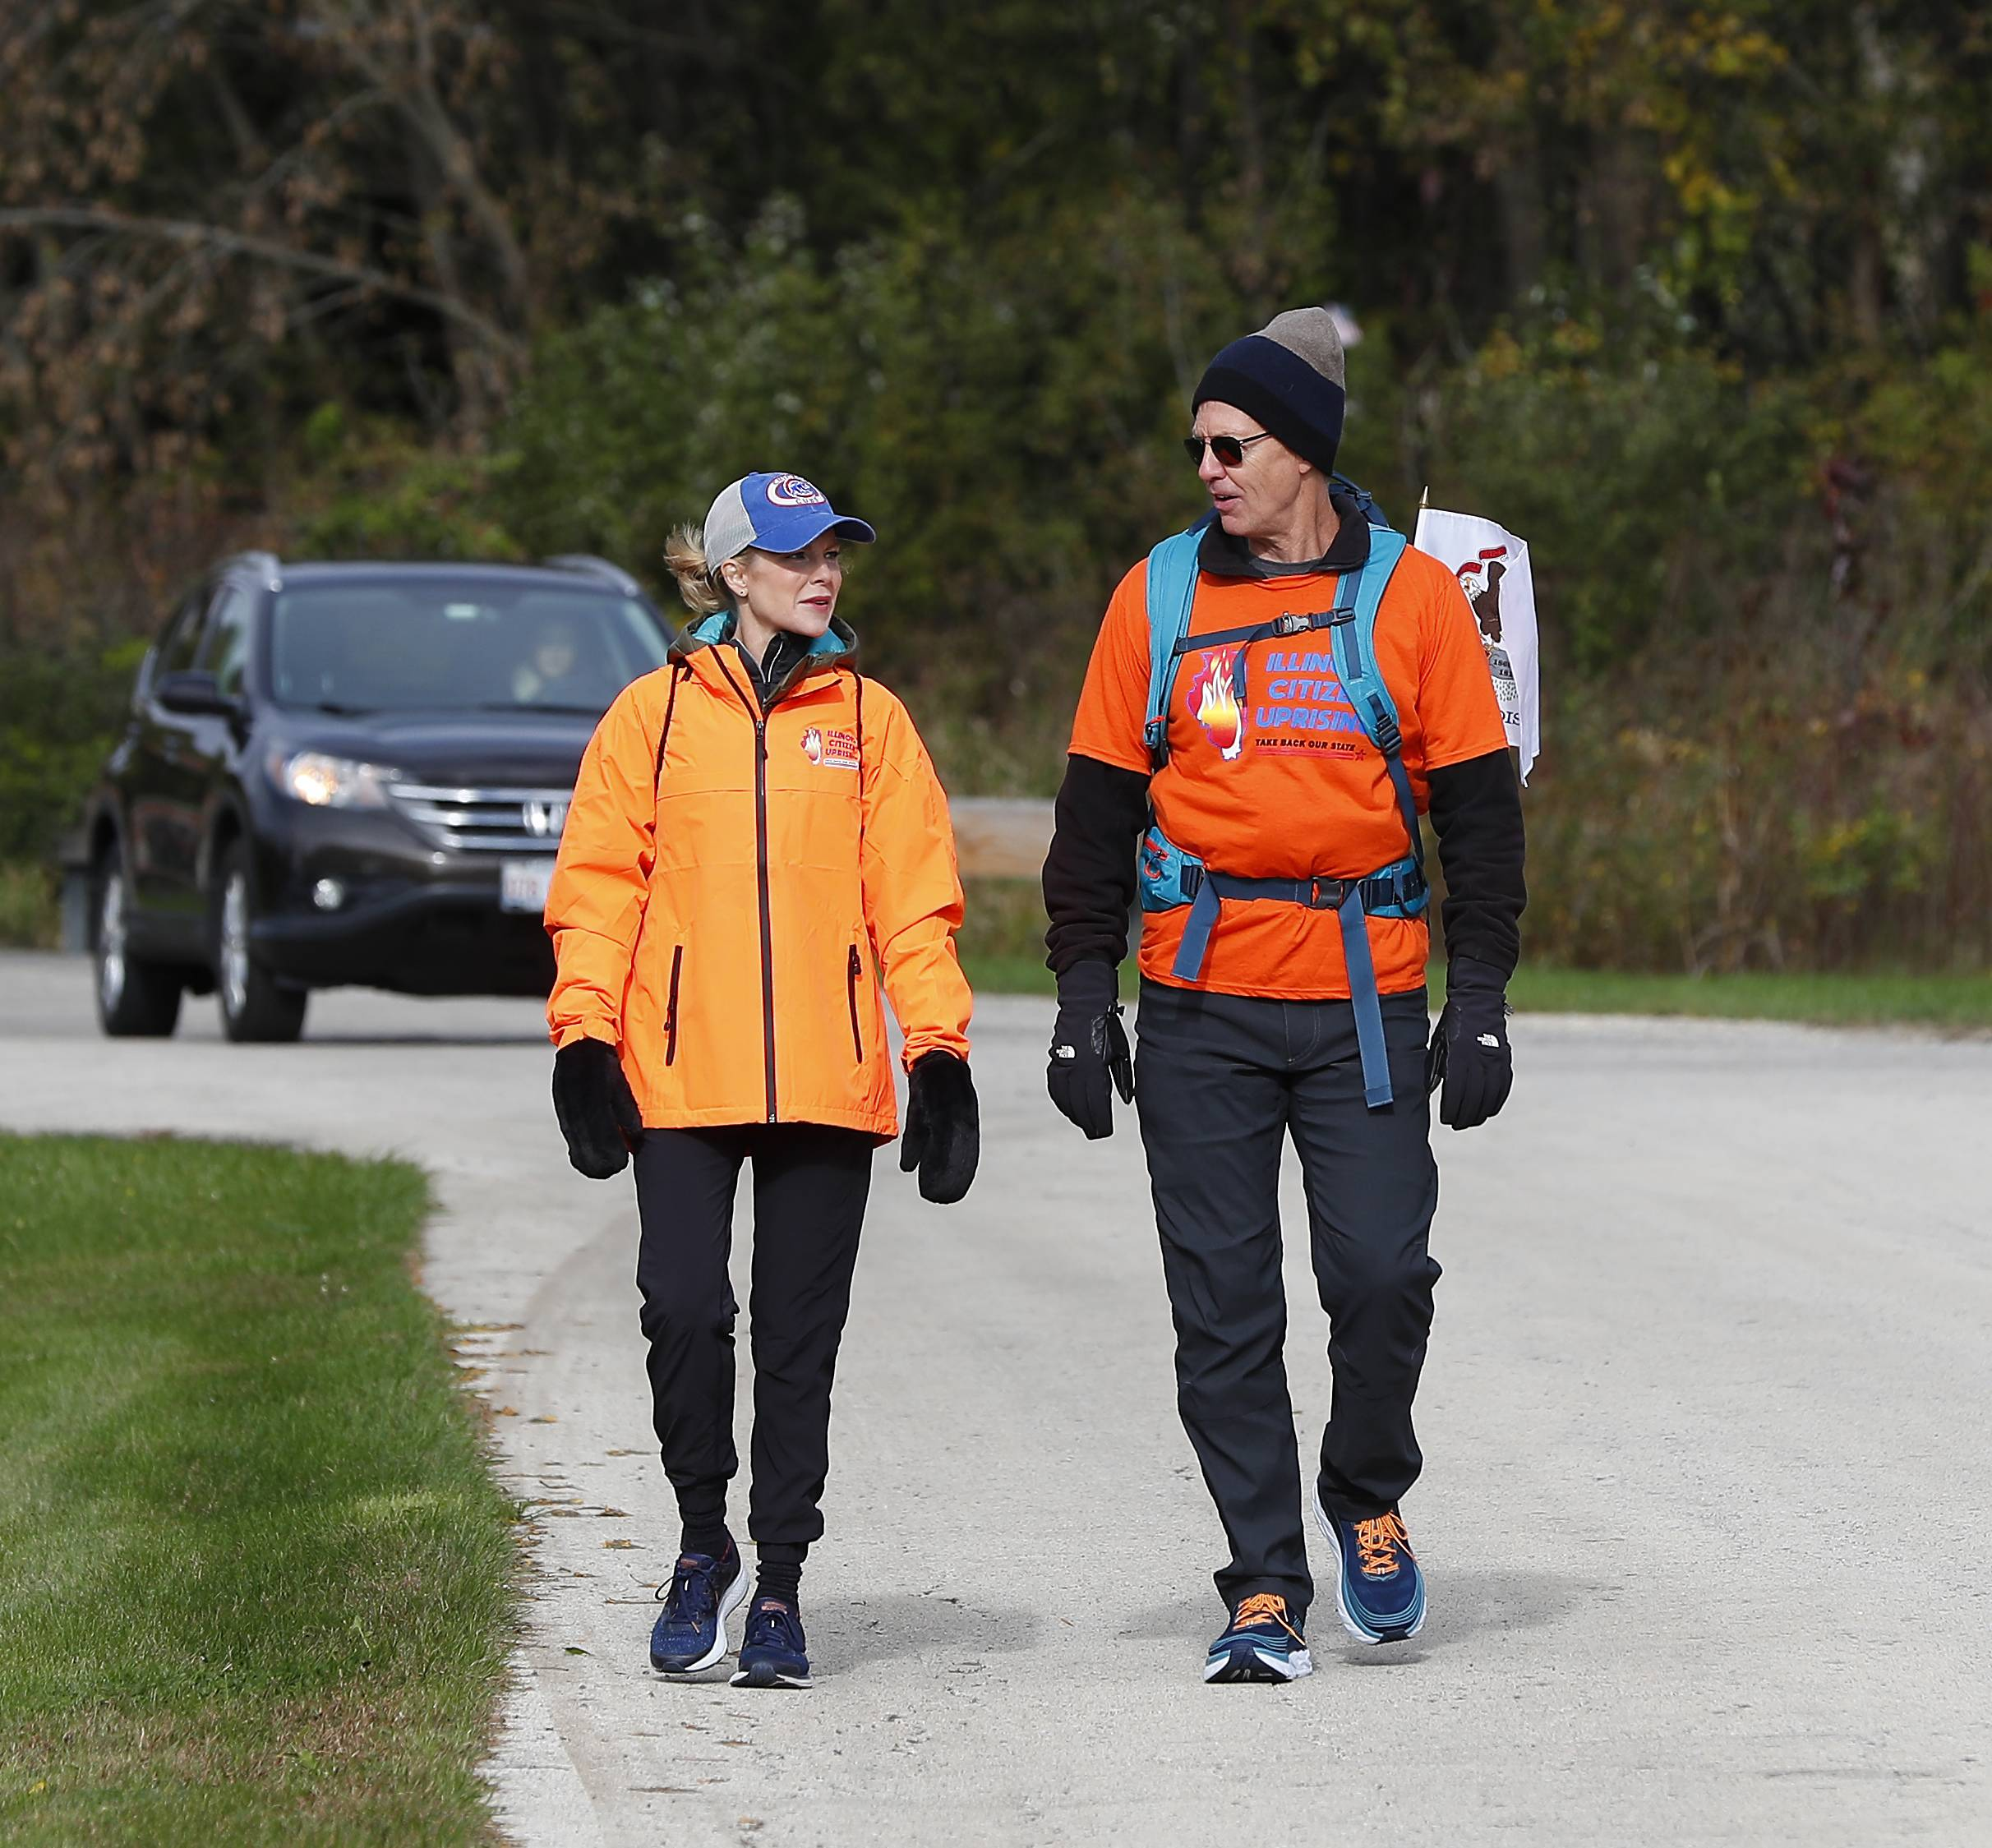 Jim Coxworth, founder of the nonpartisan group Illinois Citizen Uprising, begins a 187-mile walk Thursday from his Campton Hills home to Springfield to protest gerrymandering and fight for term limits.